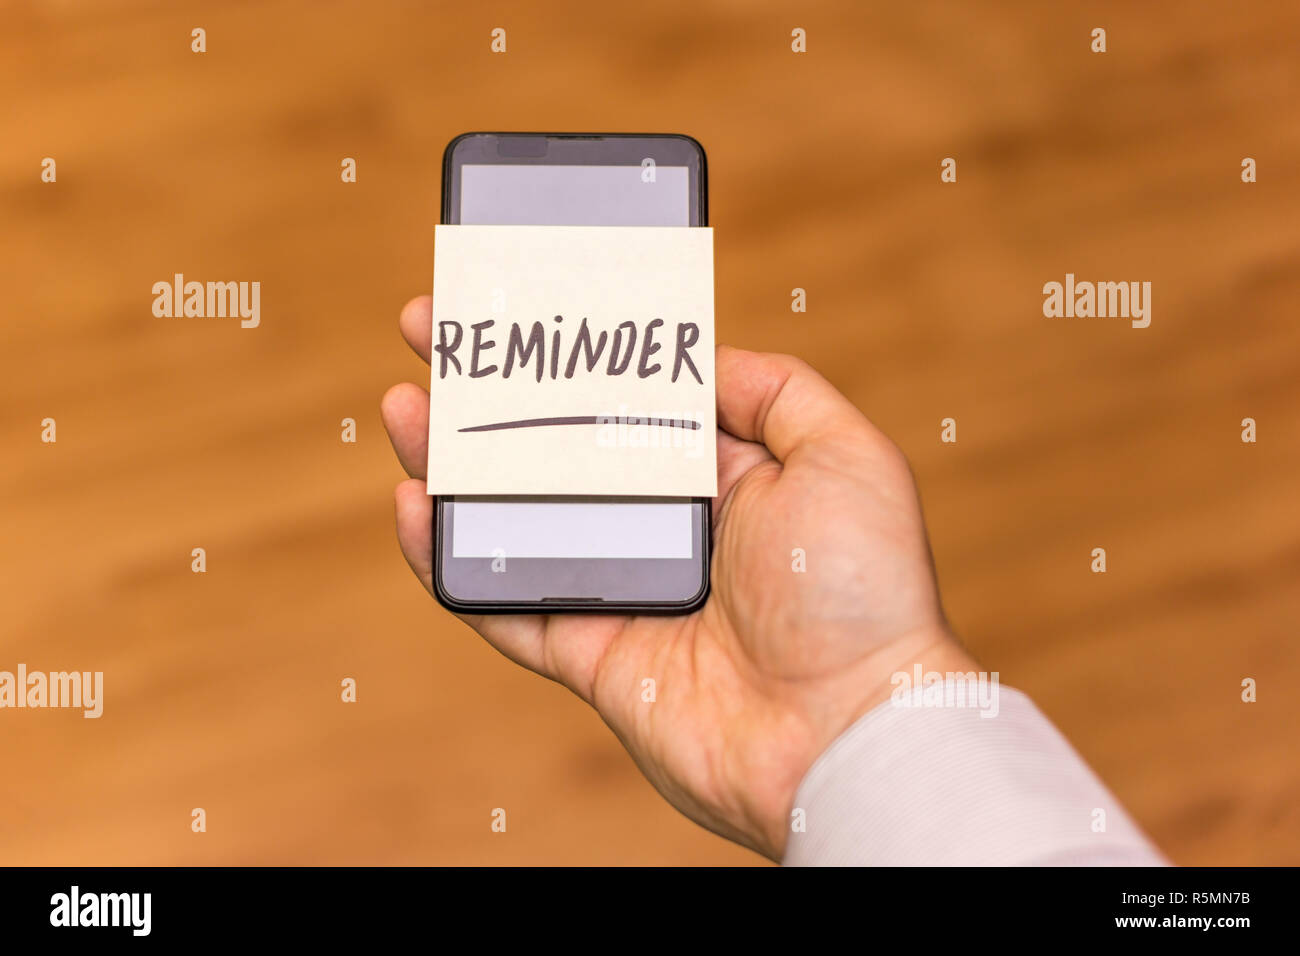 Human hand holding a smartphone with yellow note sticked on it. The word reminder is written on the note. - Stock Image